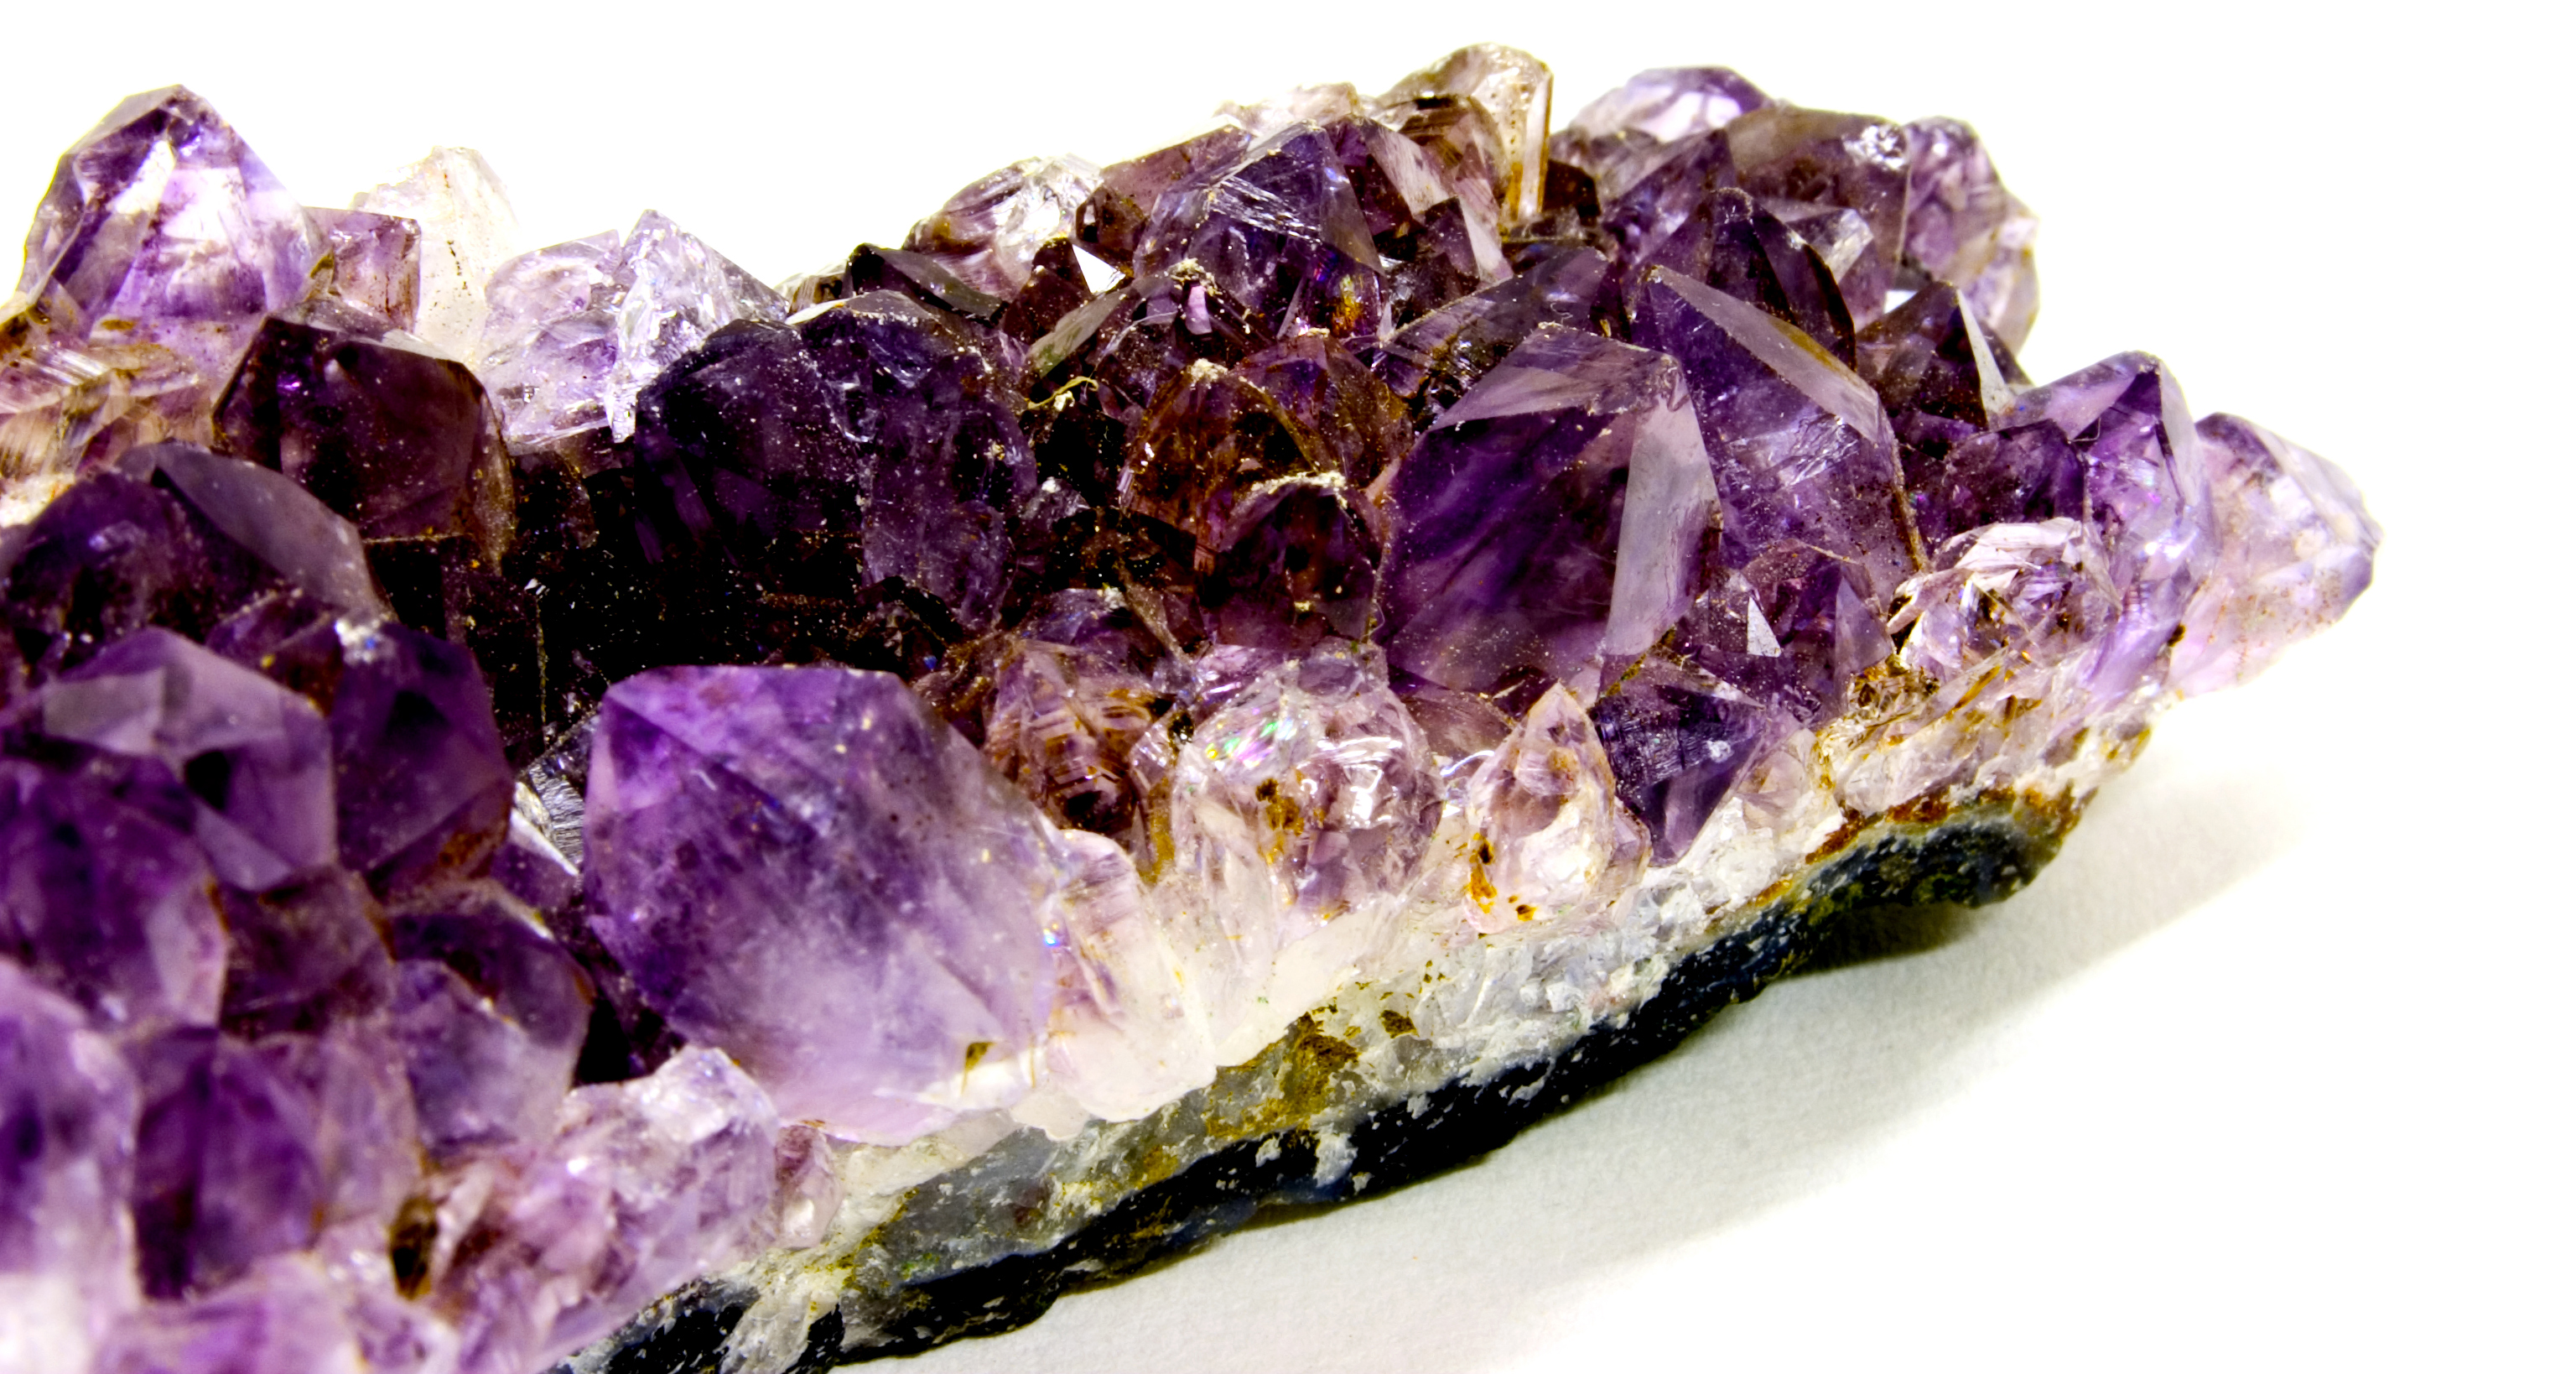 quartz a are variety silica balance mineral transparent purple your soft its color violet which gemstone sugar most the of due is blood levels used gems coarse amethyst grained valuable all considered to